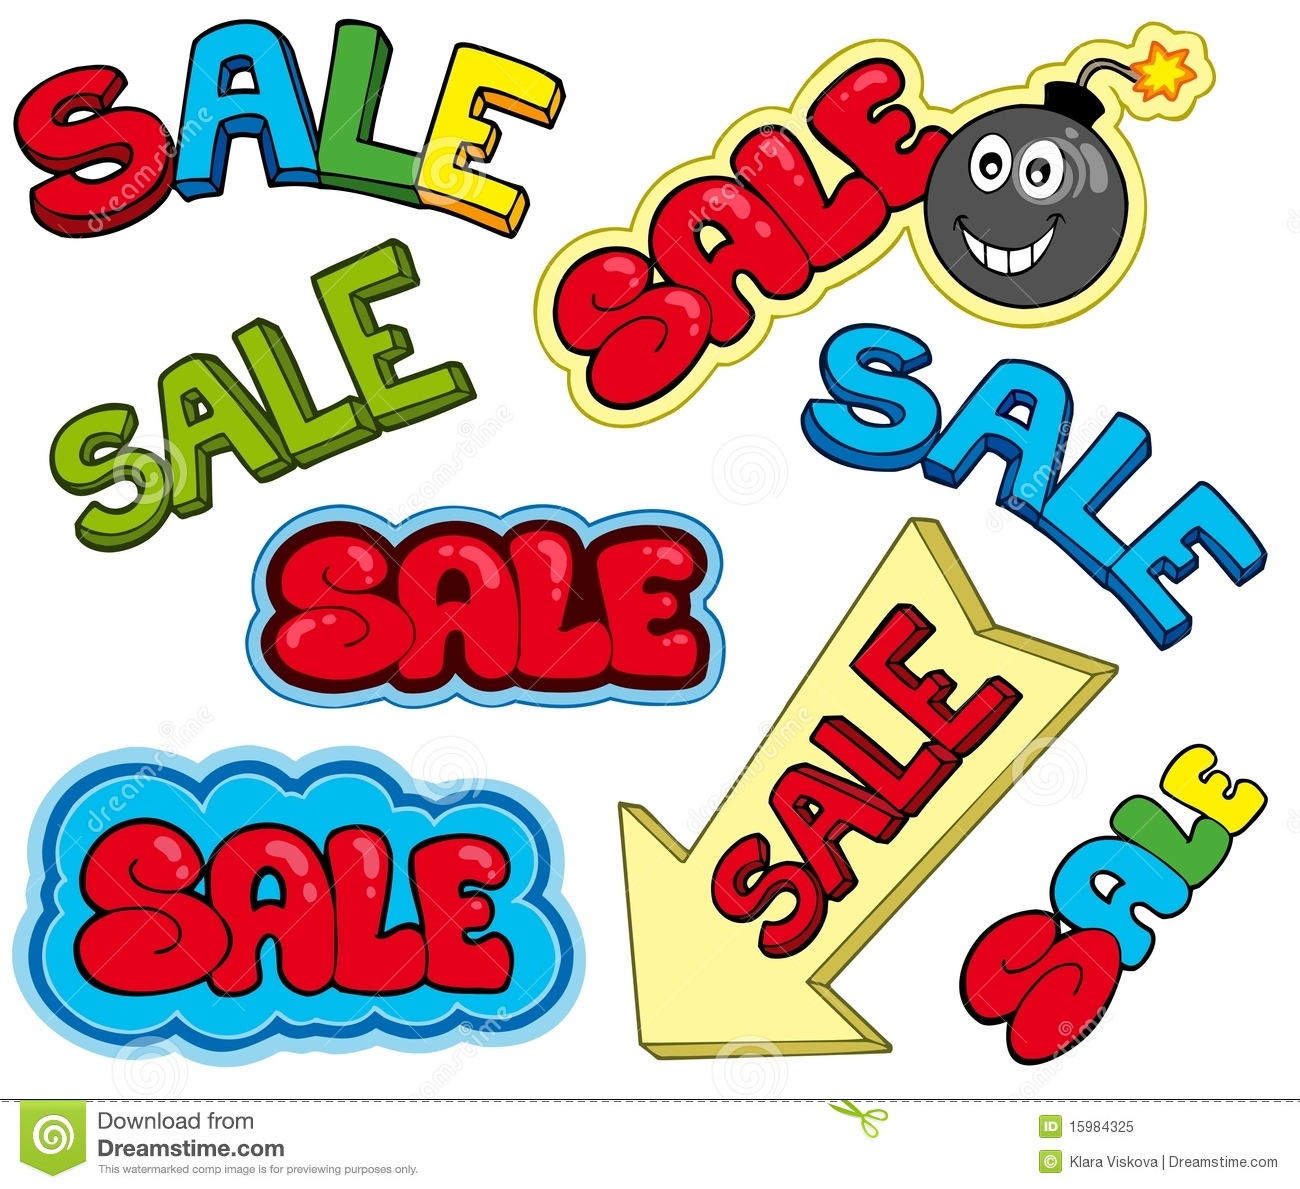 Cartoon Sale Signs Royalty Free Stock Photo - Image: 15984325